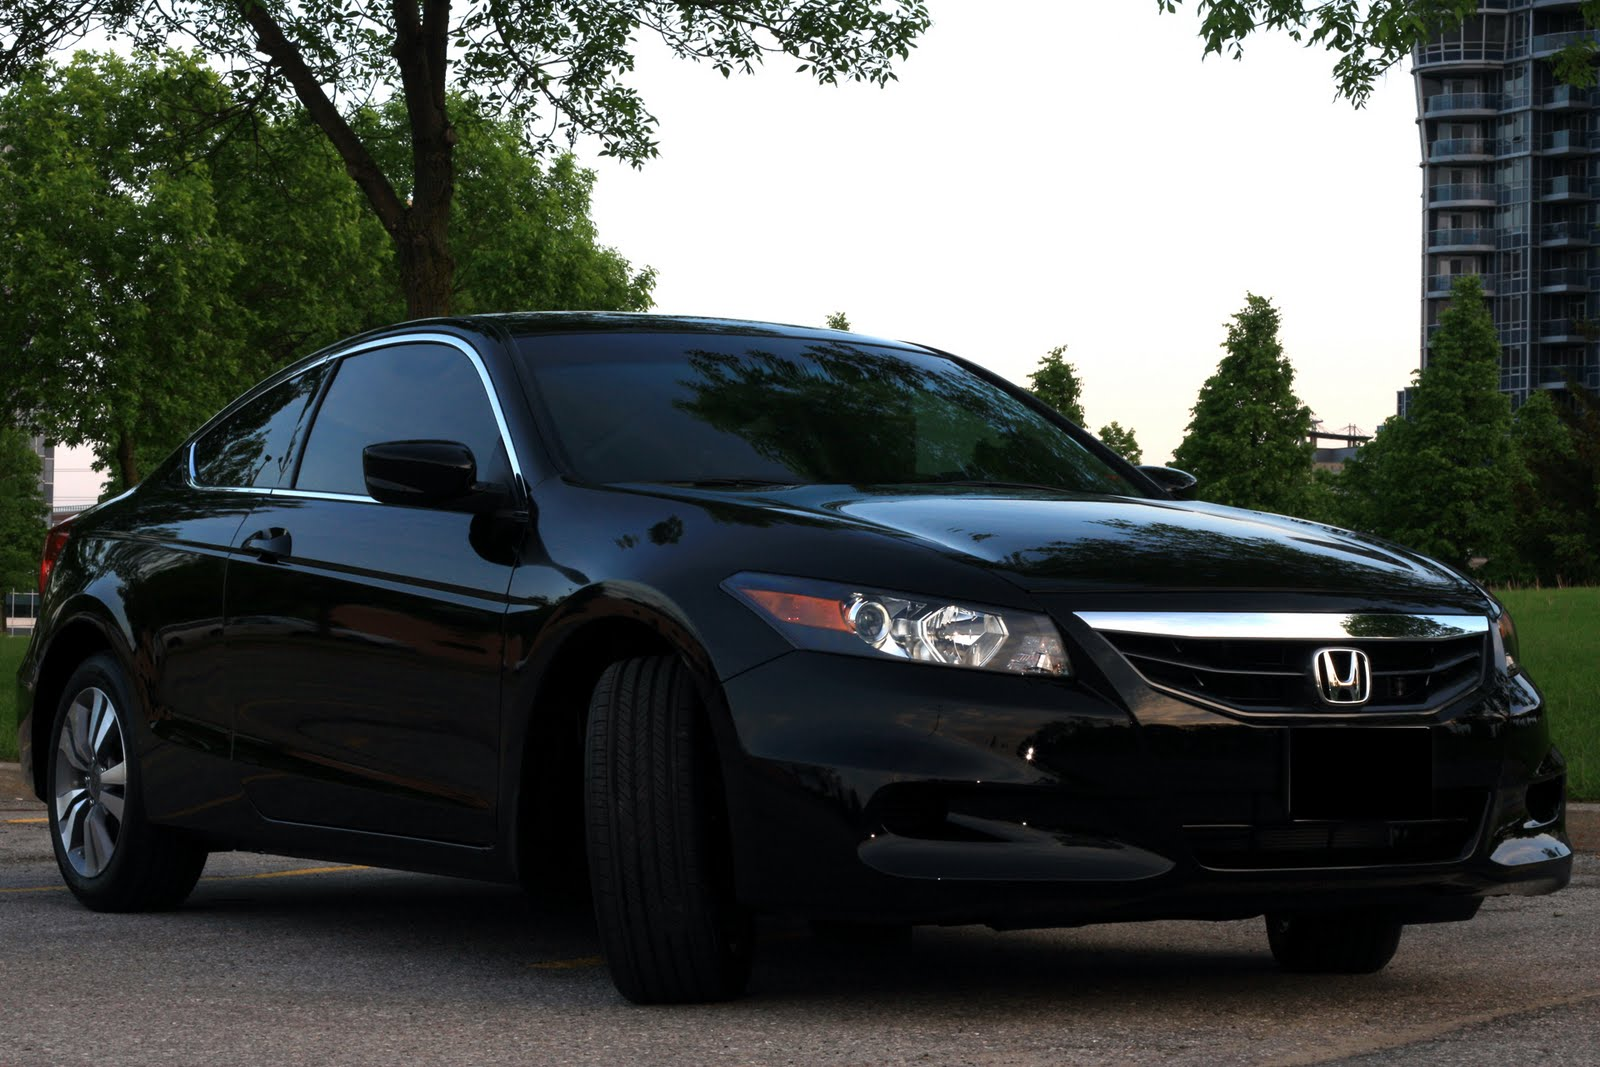 2011 Black Honda Accord Coupe High Resolution Pictures David